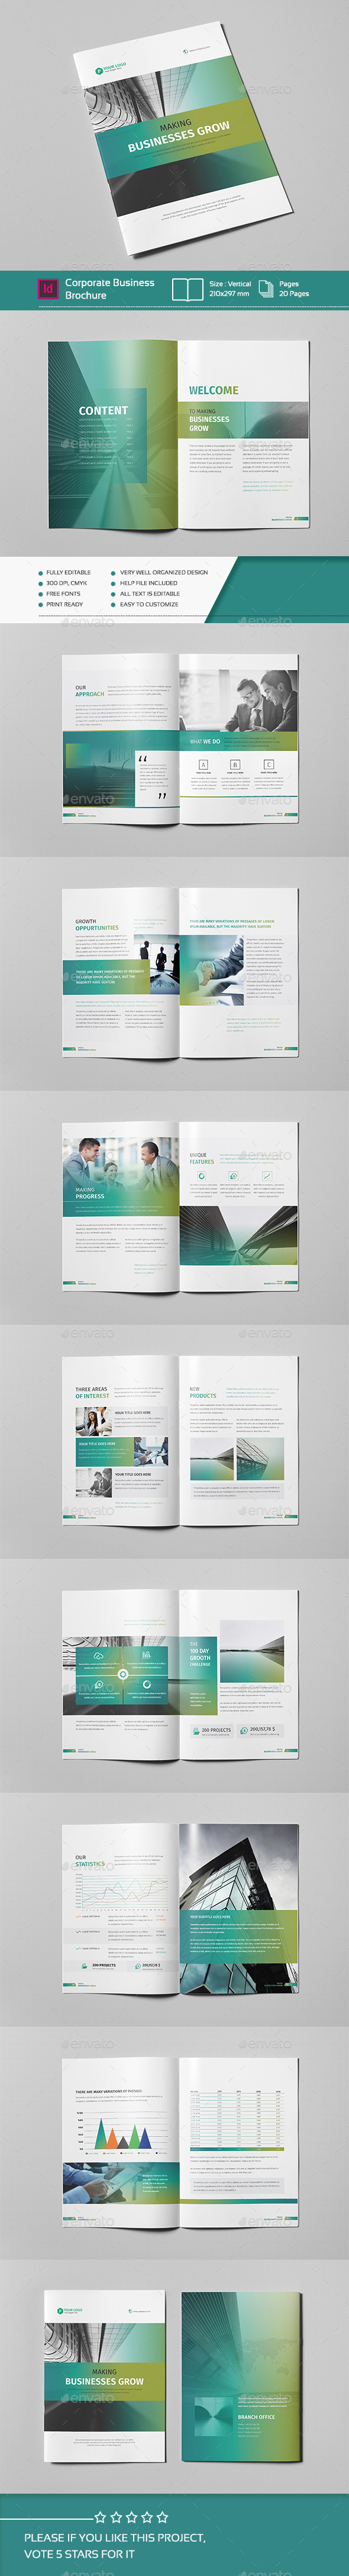 Corporate Business Brochure 20 Vol.02 - Corporate Brochures